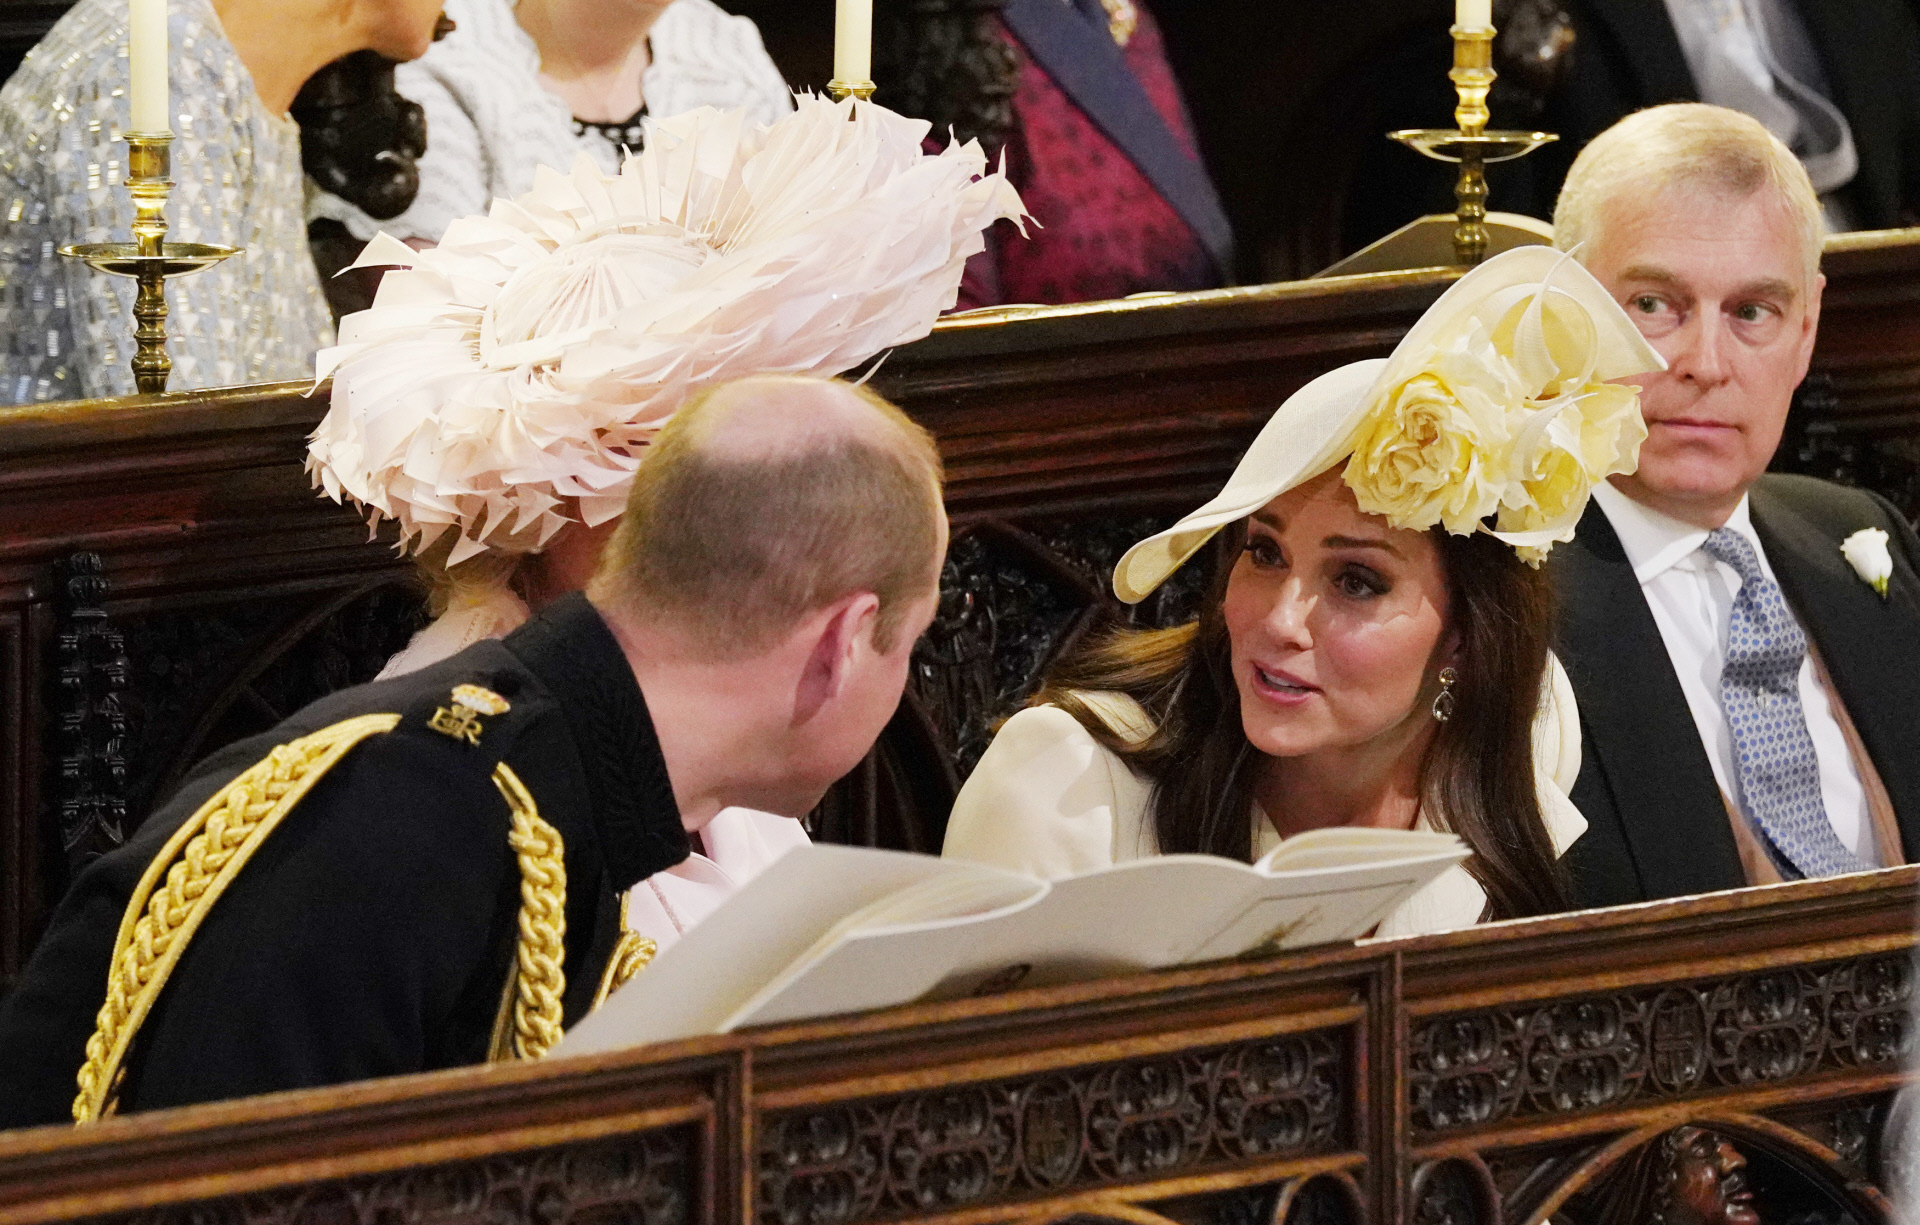 Los duques de Cambridge, William y Kate, comentan la ceremonia.